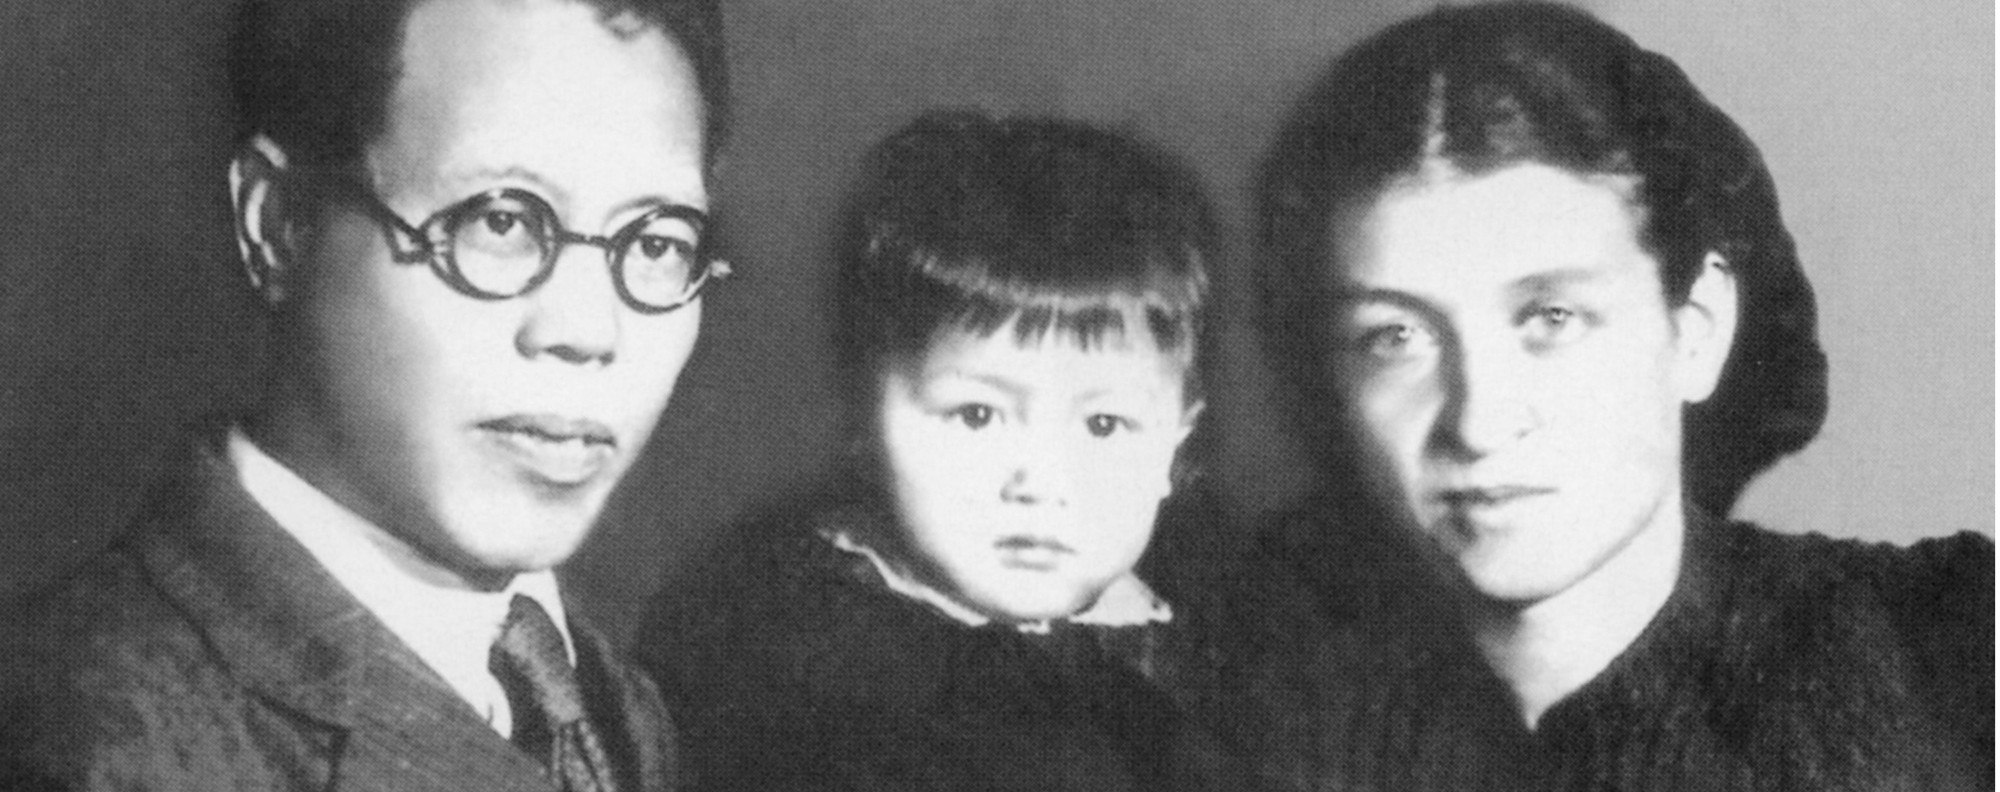 Chinese Communist Party leader Li Lisan with his Russian wife and daughter.